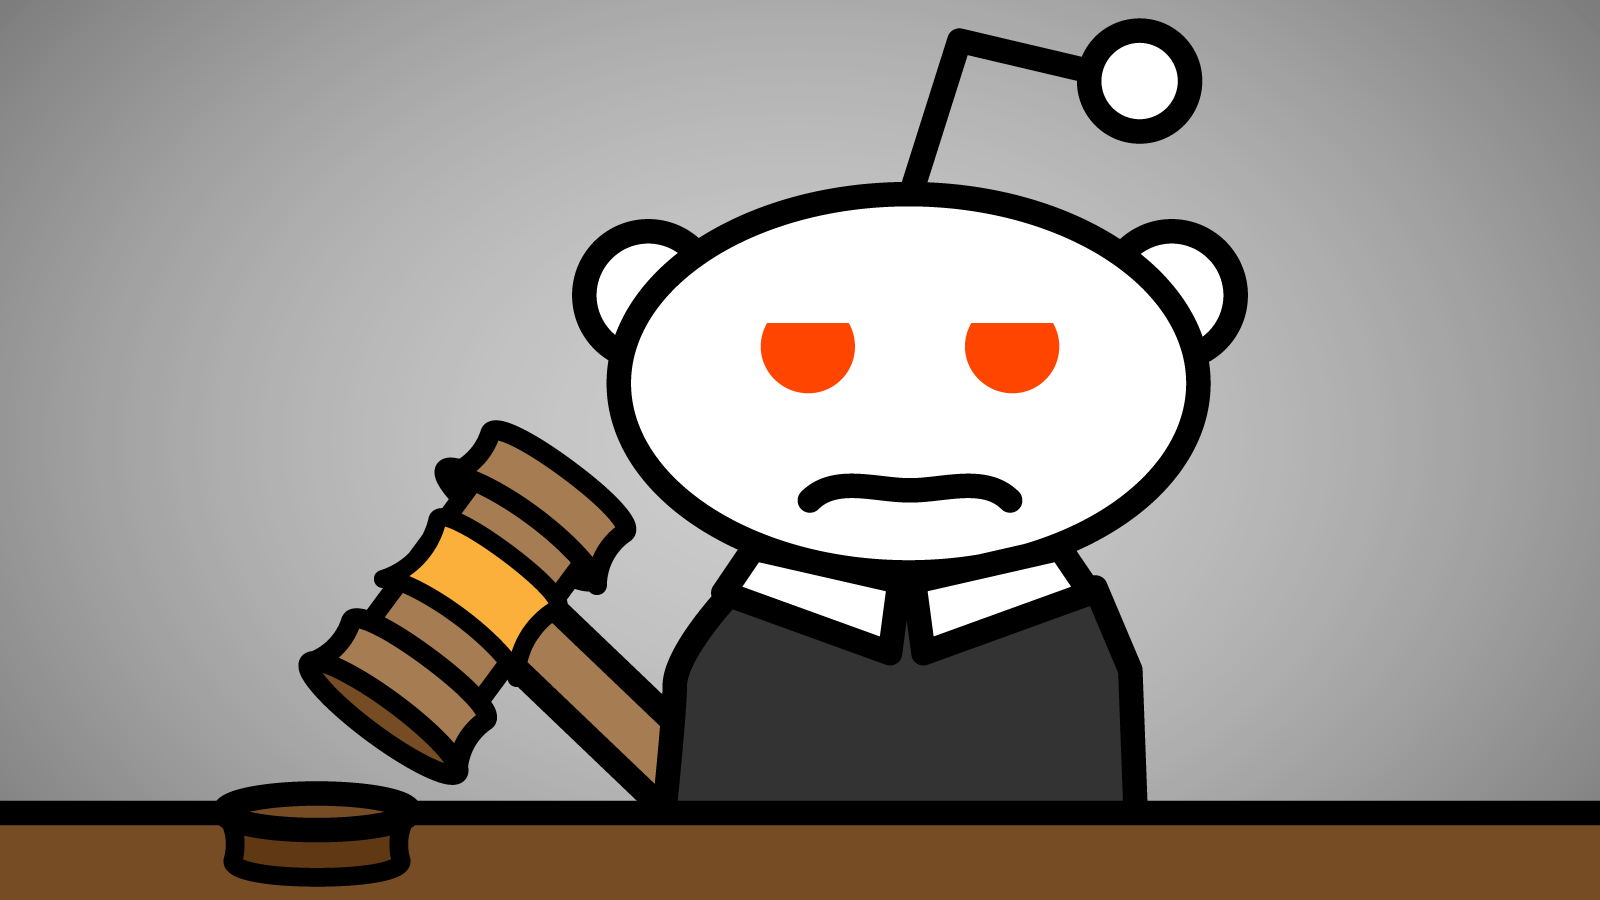 Reddit cracks down on abuse as CEO apologizes for trolling